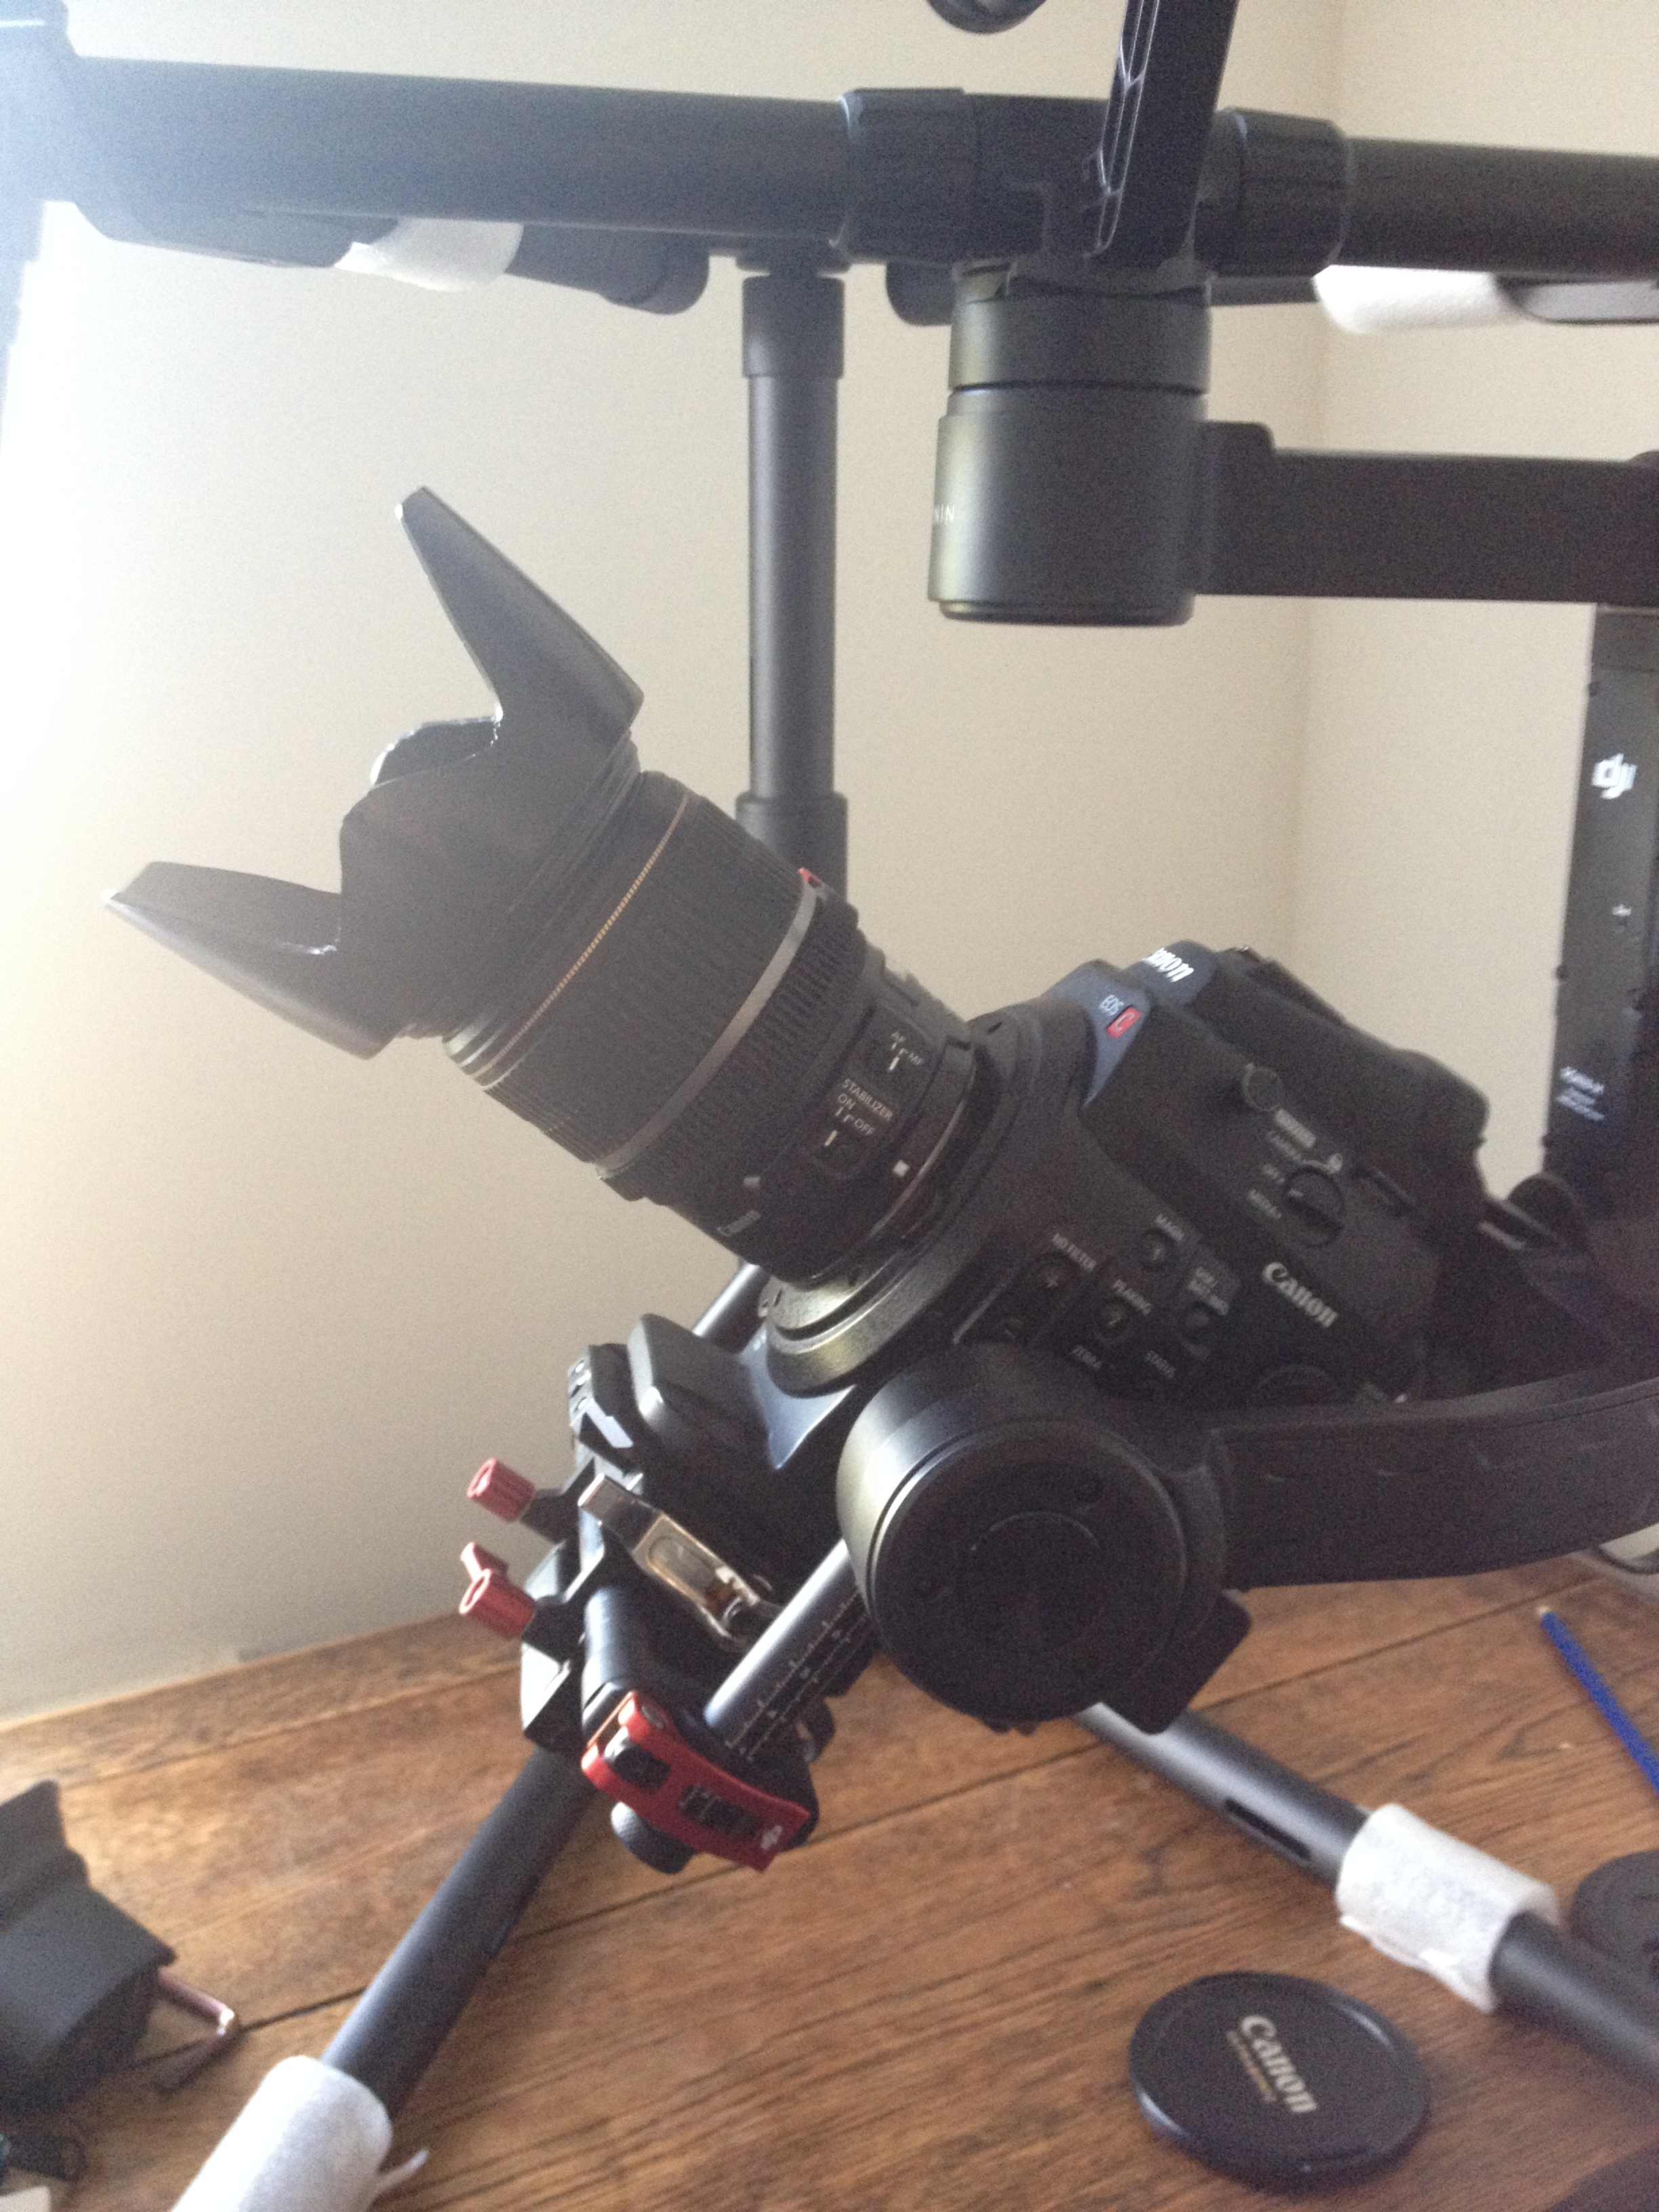 ronin m with canon c300 17-55mm